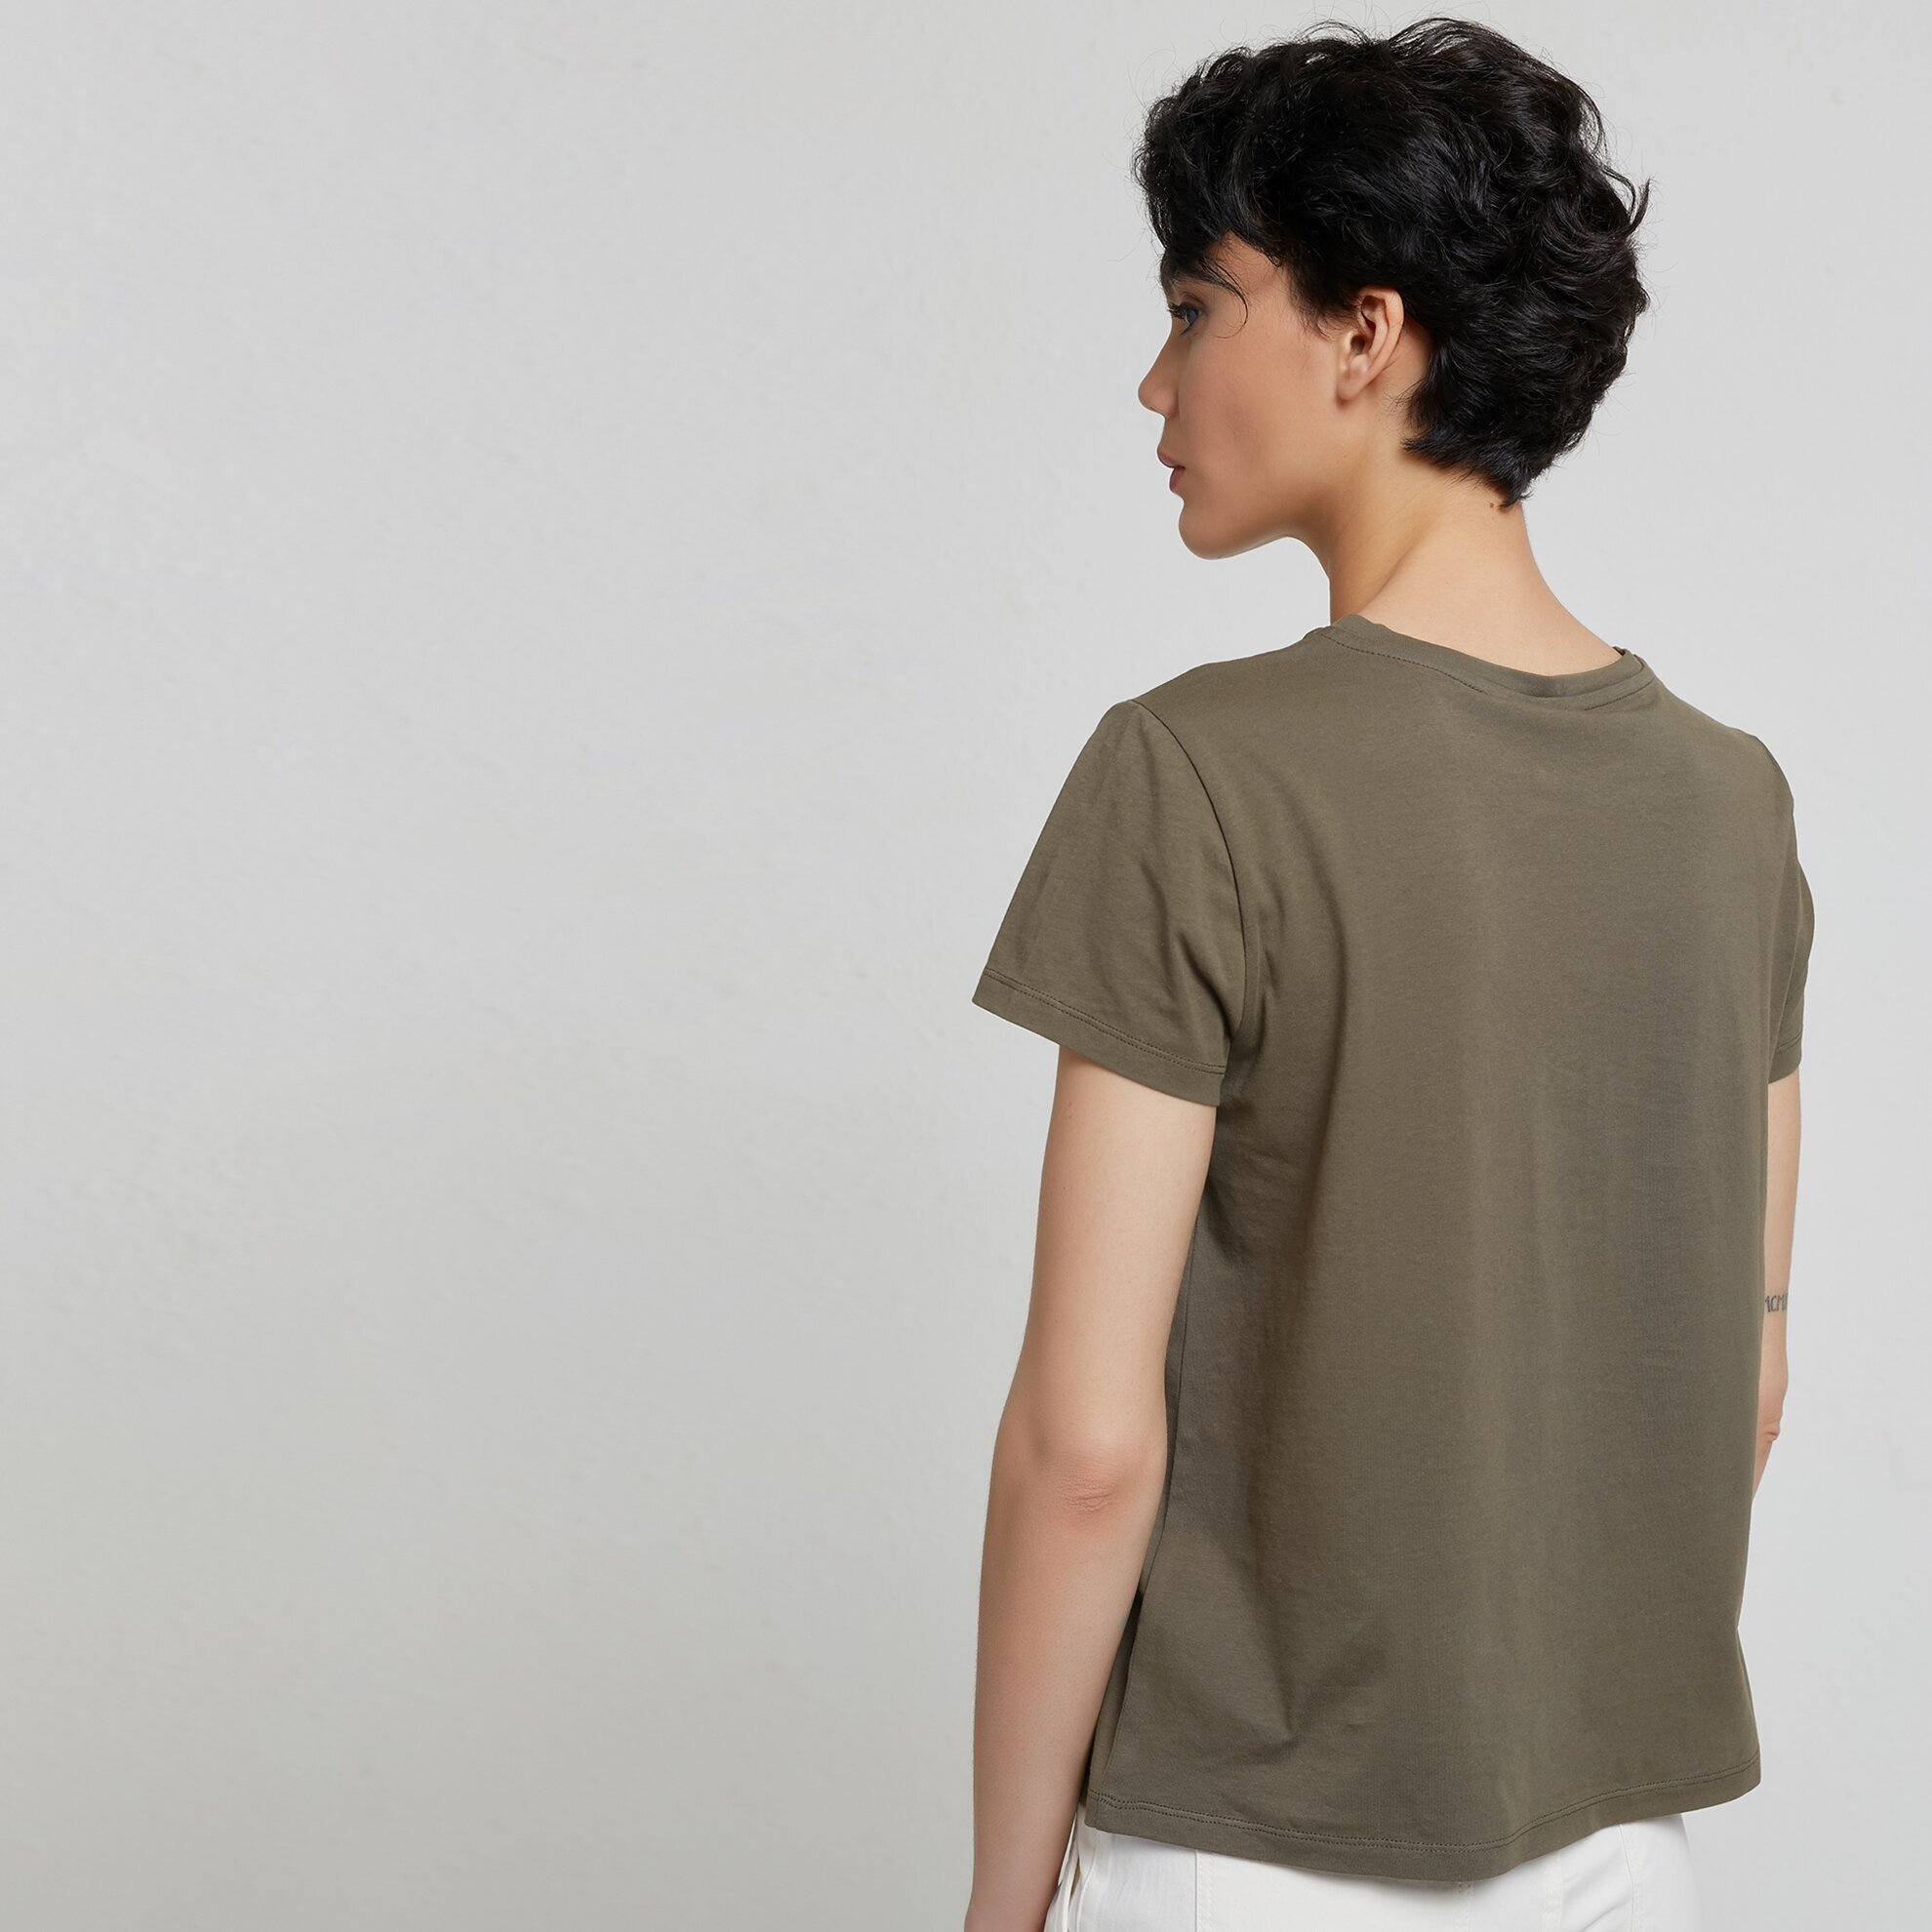 Embroidery Detailed Short Sleeve T-Shirt